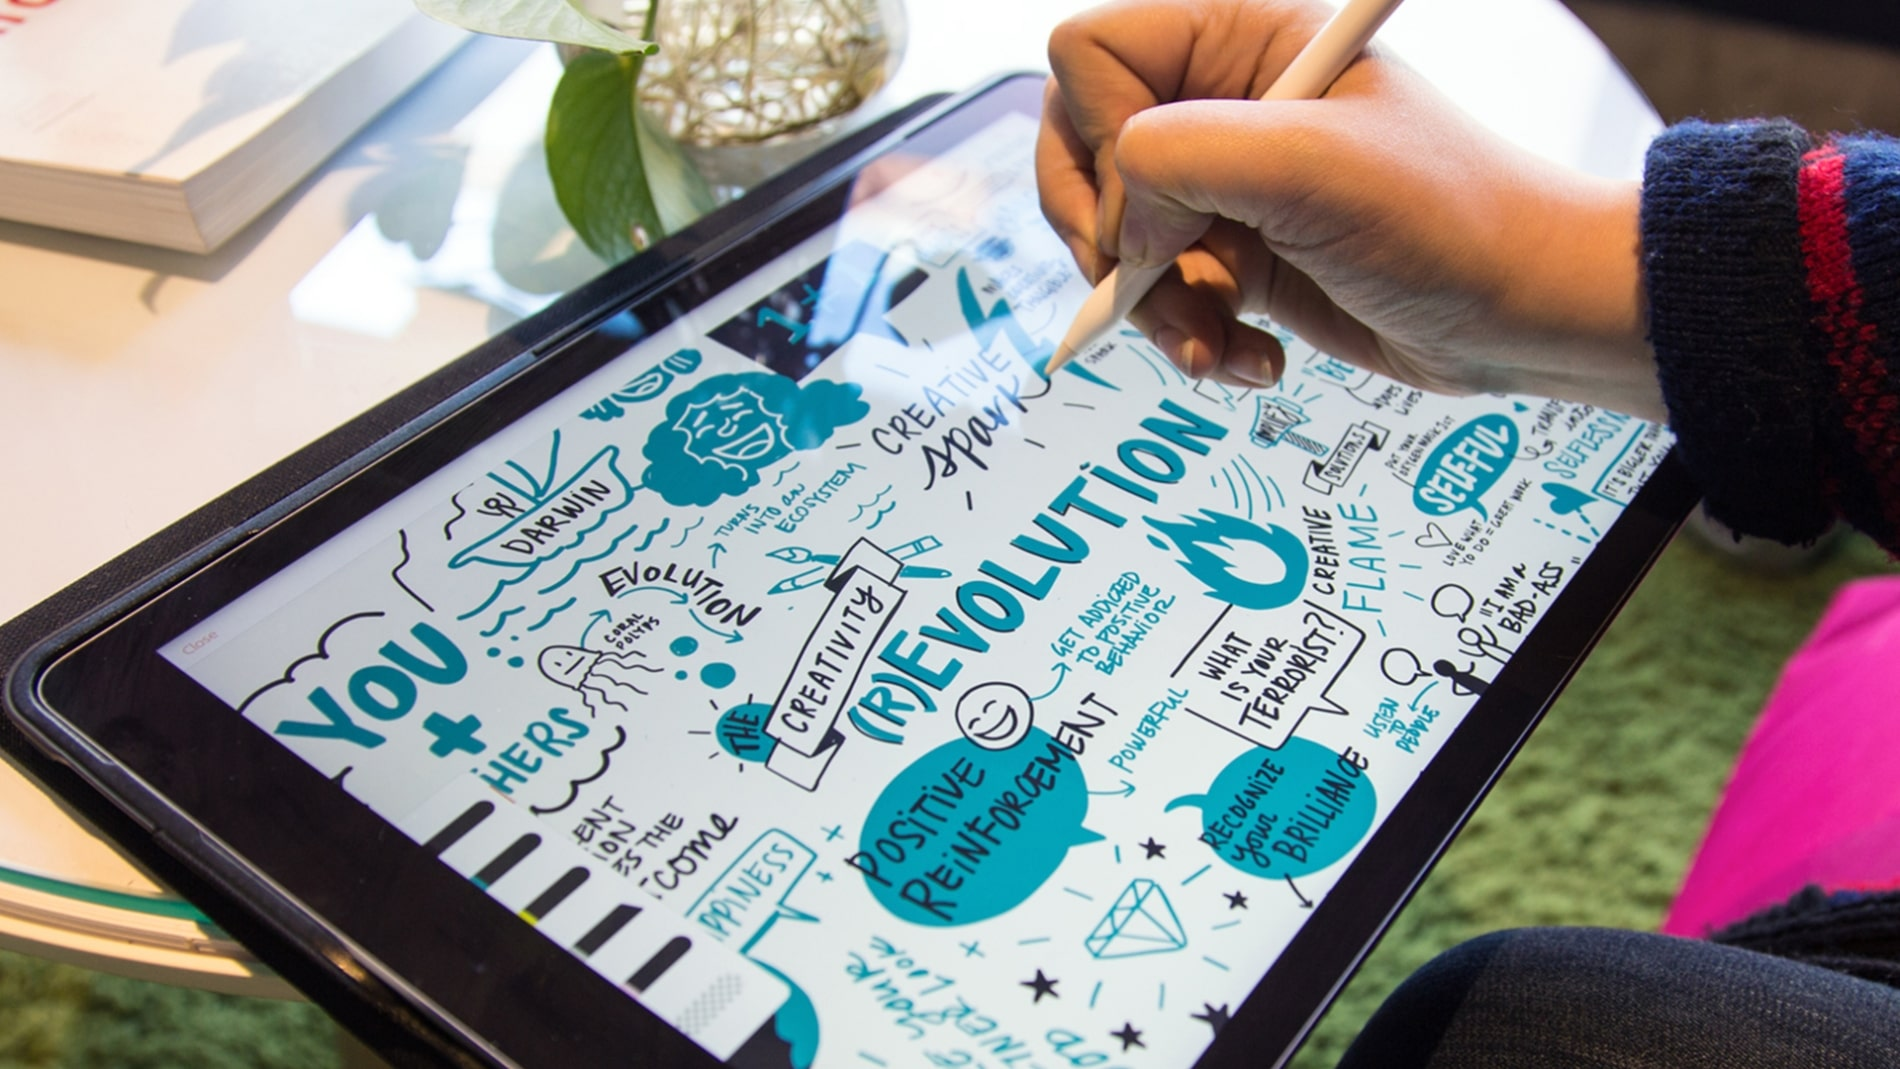 7 Tools for Visual Digital Note Taking